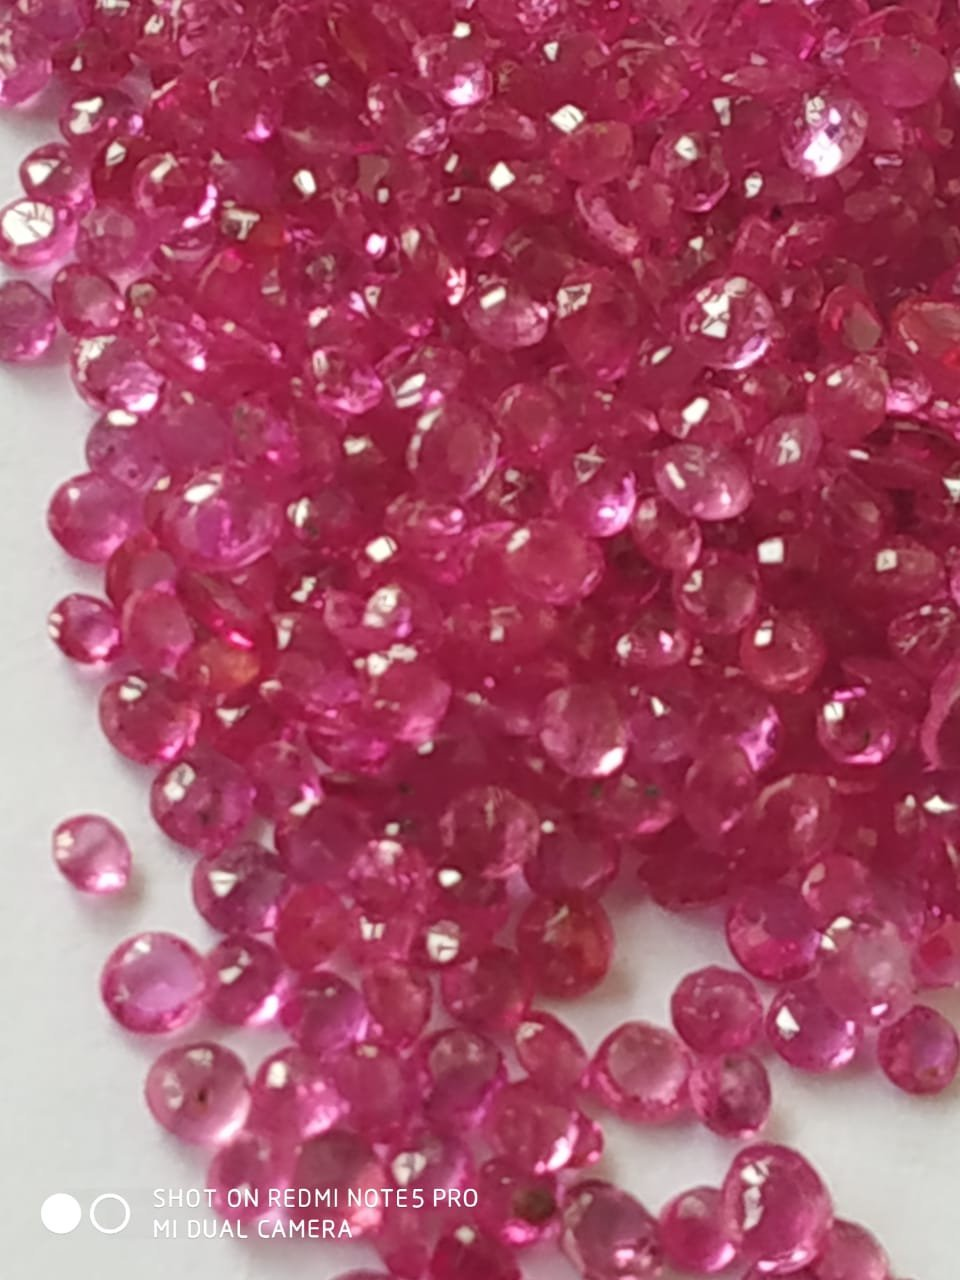 #Natural Burma Ruby Round Cut 1.3 - 2.1 mm Lot Mixed Parcel Gemstone-no heat